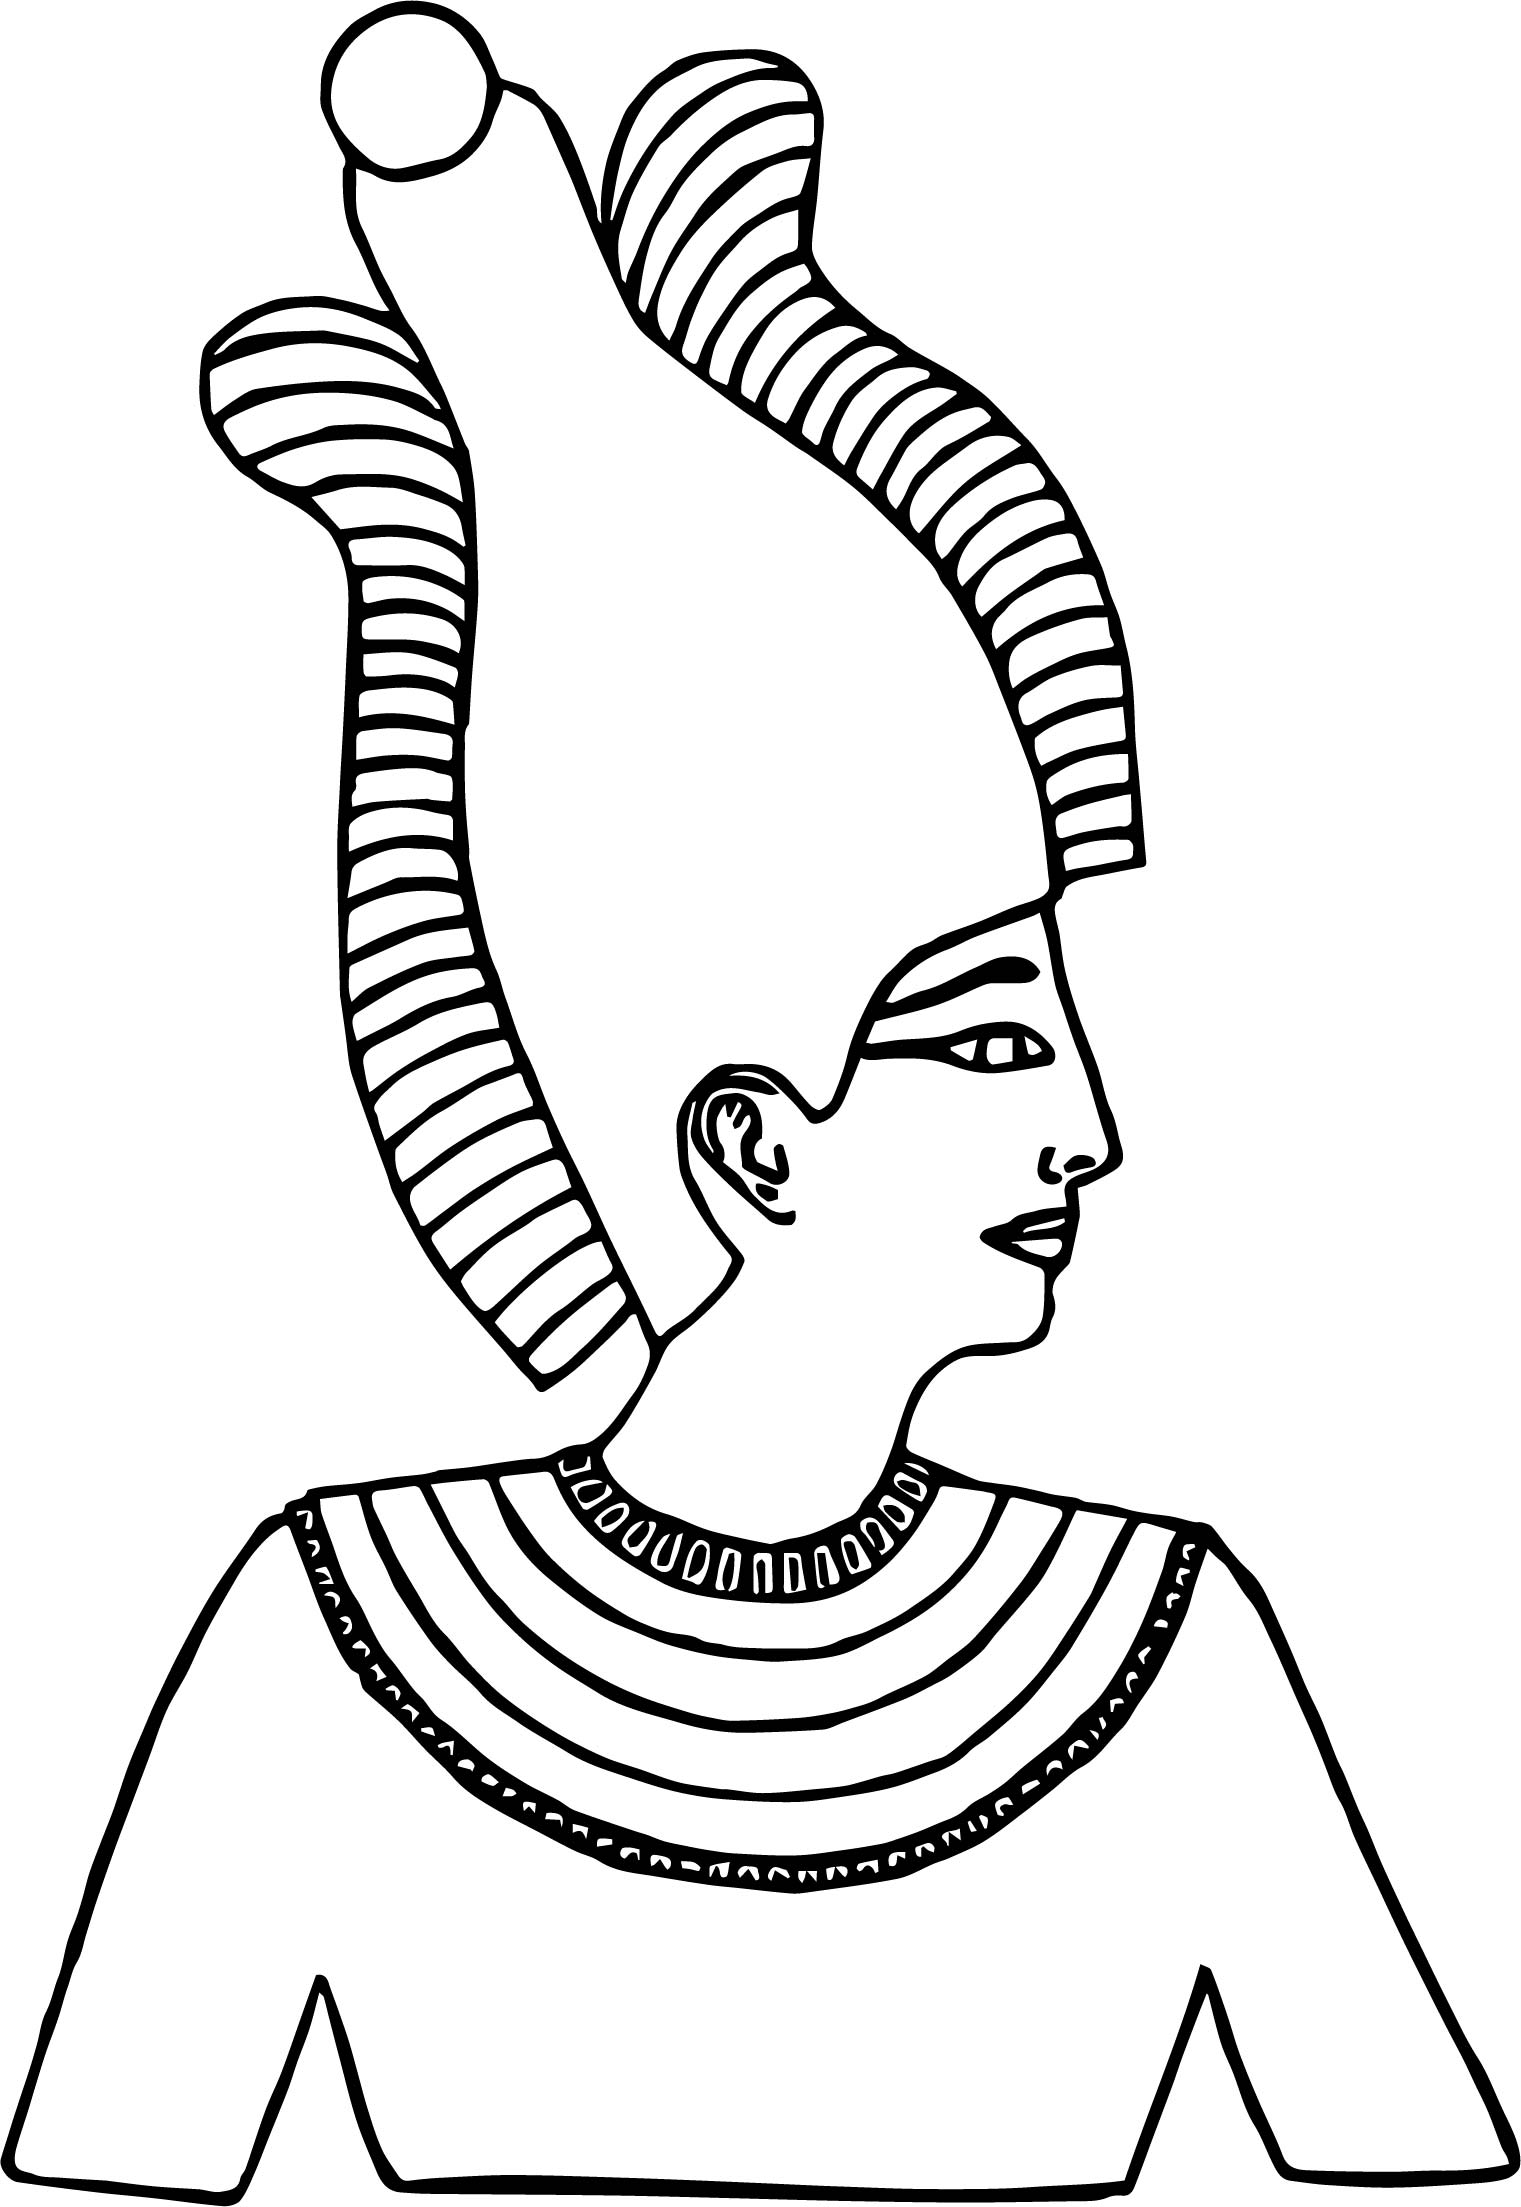 atef crown coloring page - Crown Coloring Pages